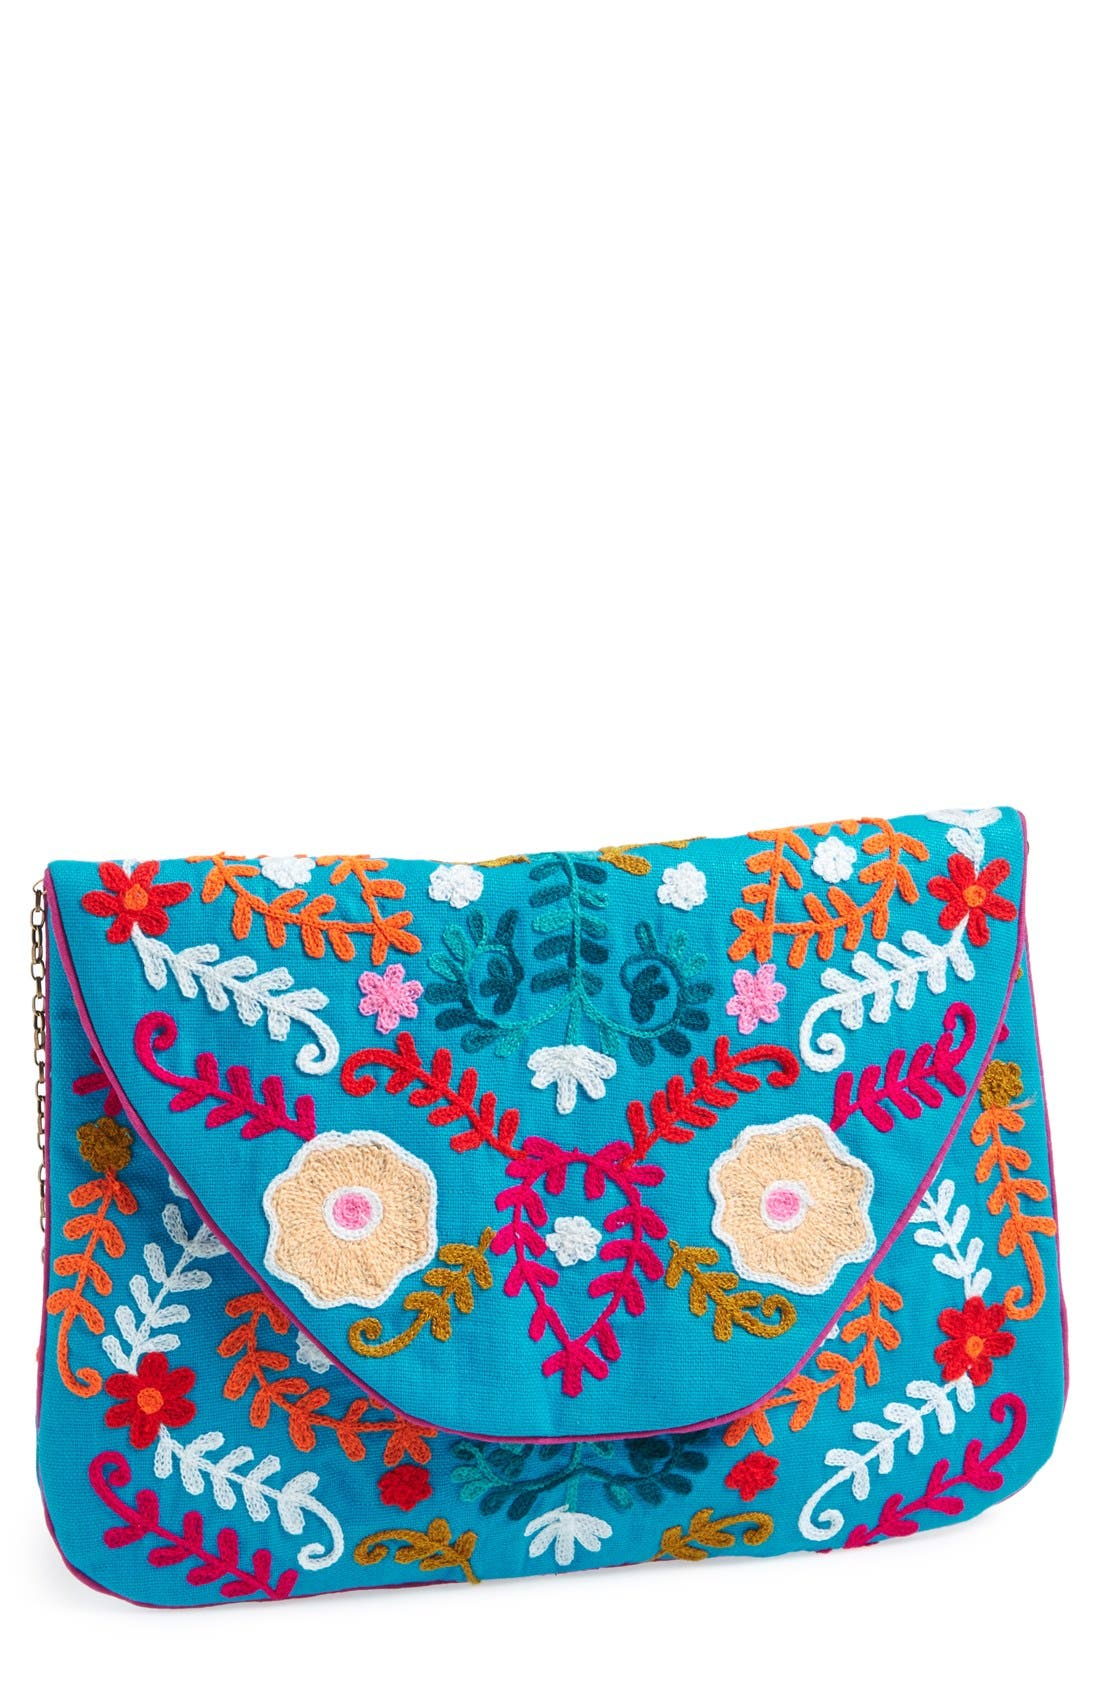 Main Image - Big Buddha 'Large' Oversized Embroidered Clutch